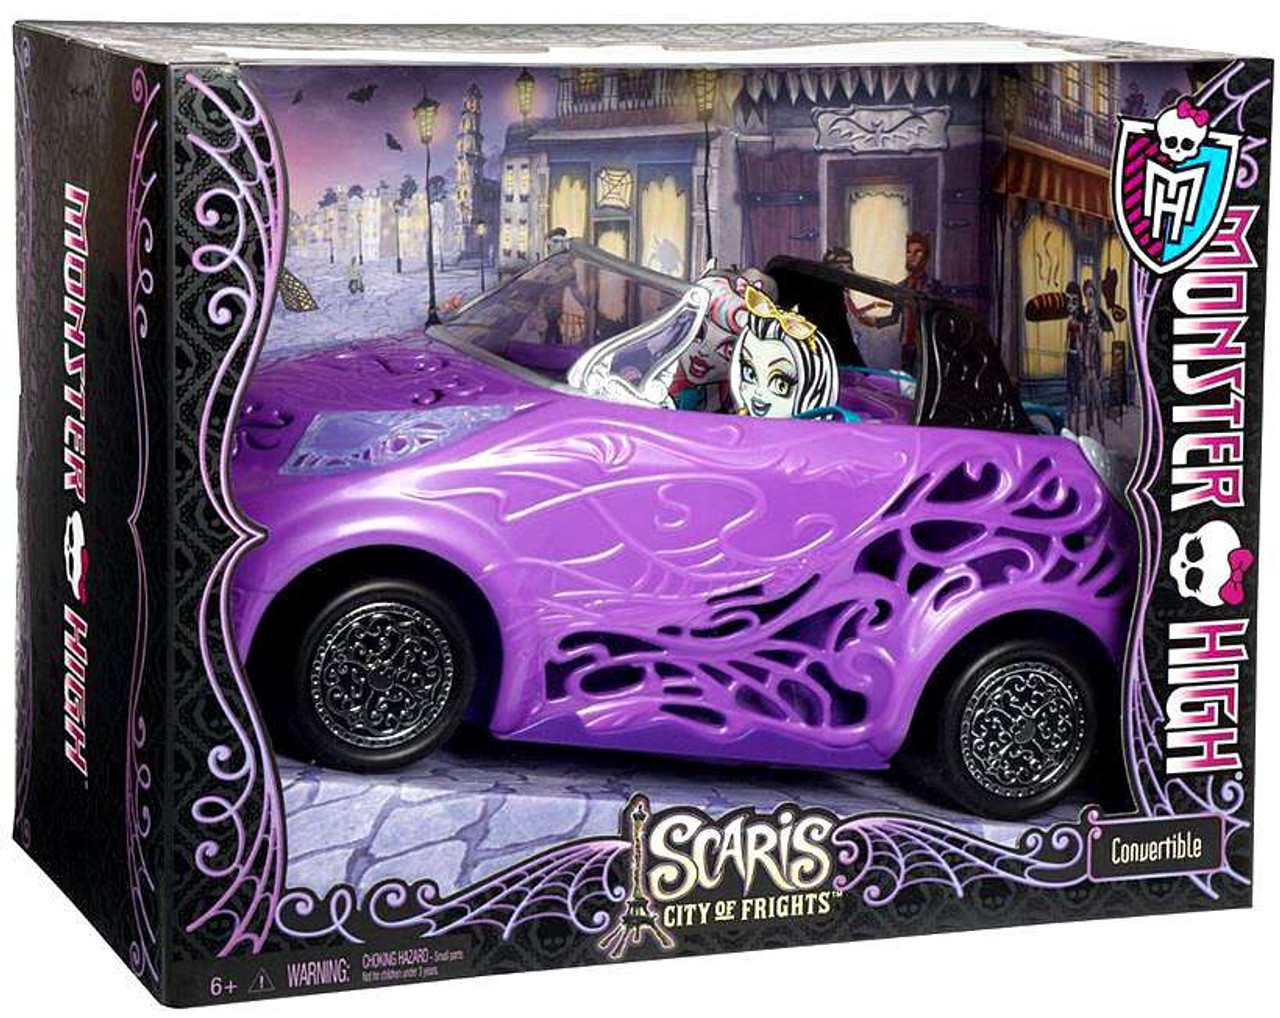 Monster High Scaris City of Frights Convertible 10.5-Inch